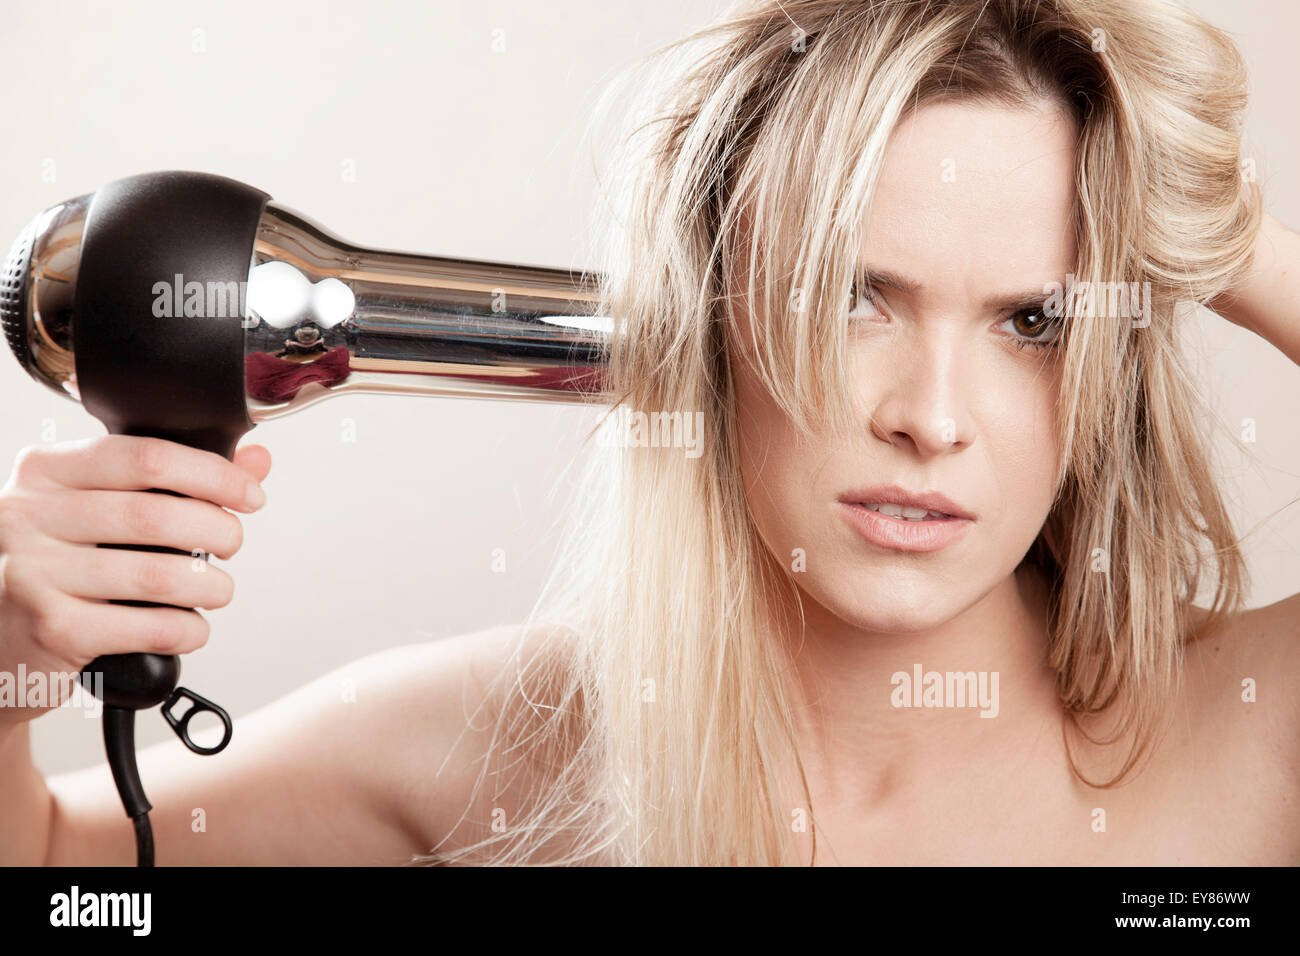 Young woman drying her hair Photo Stock